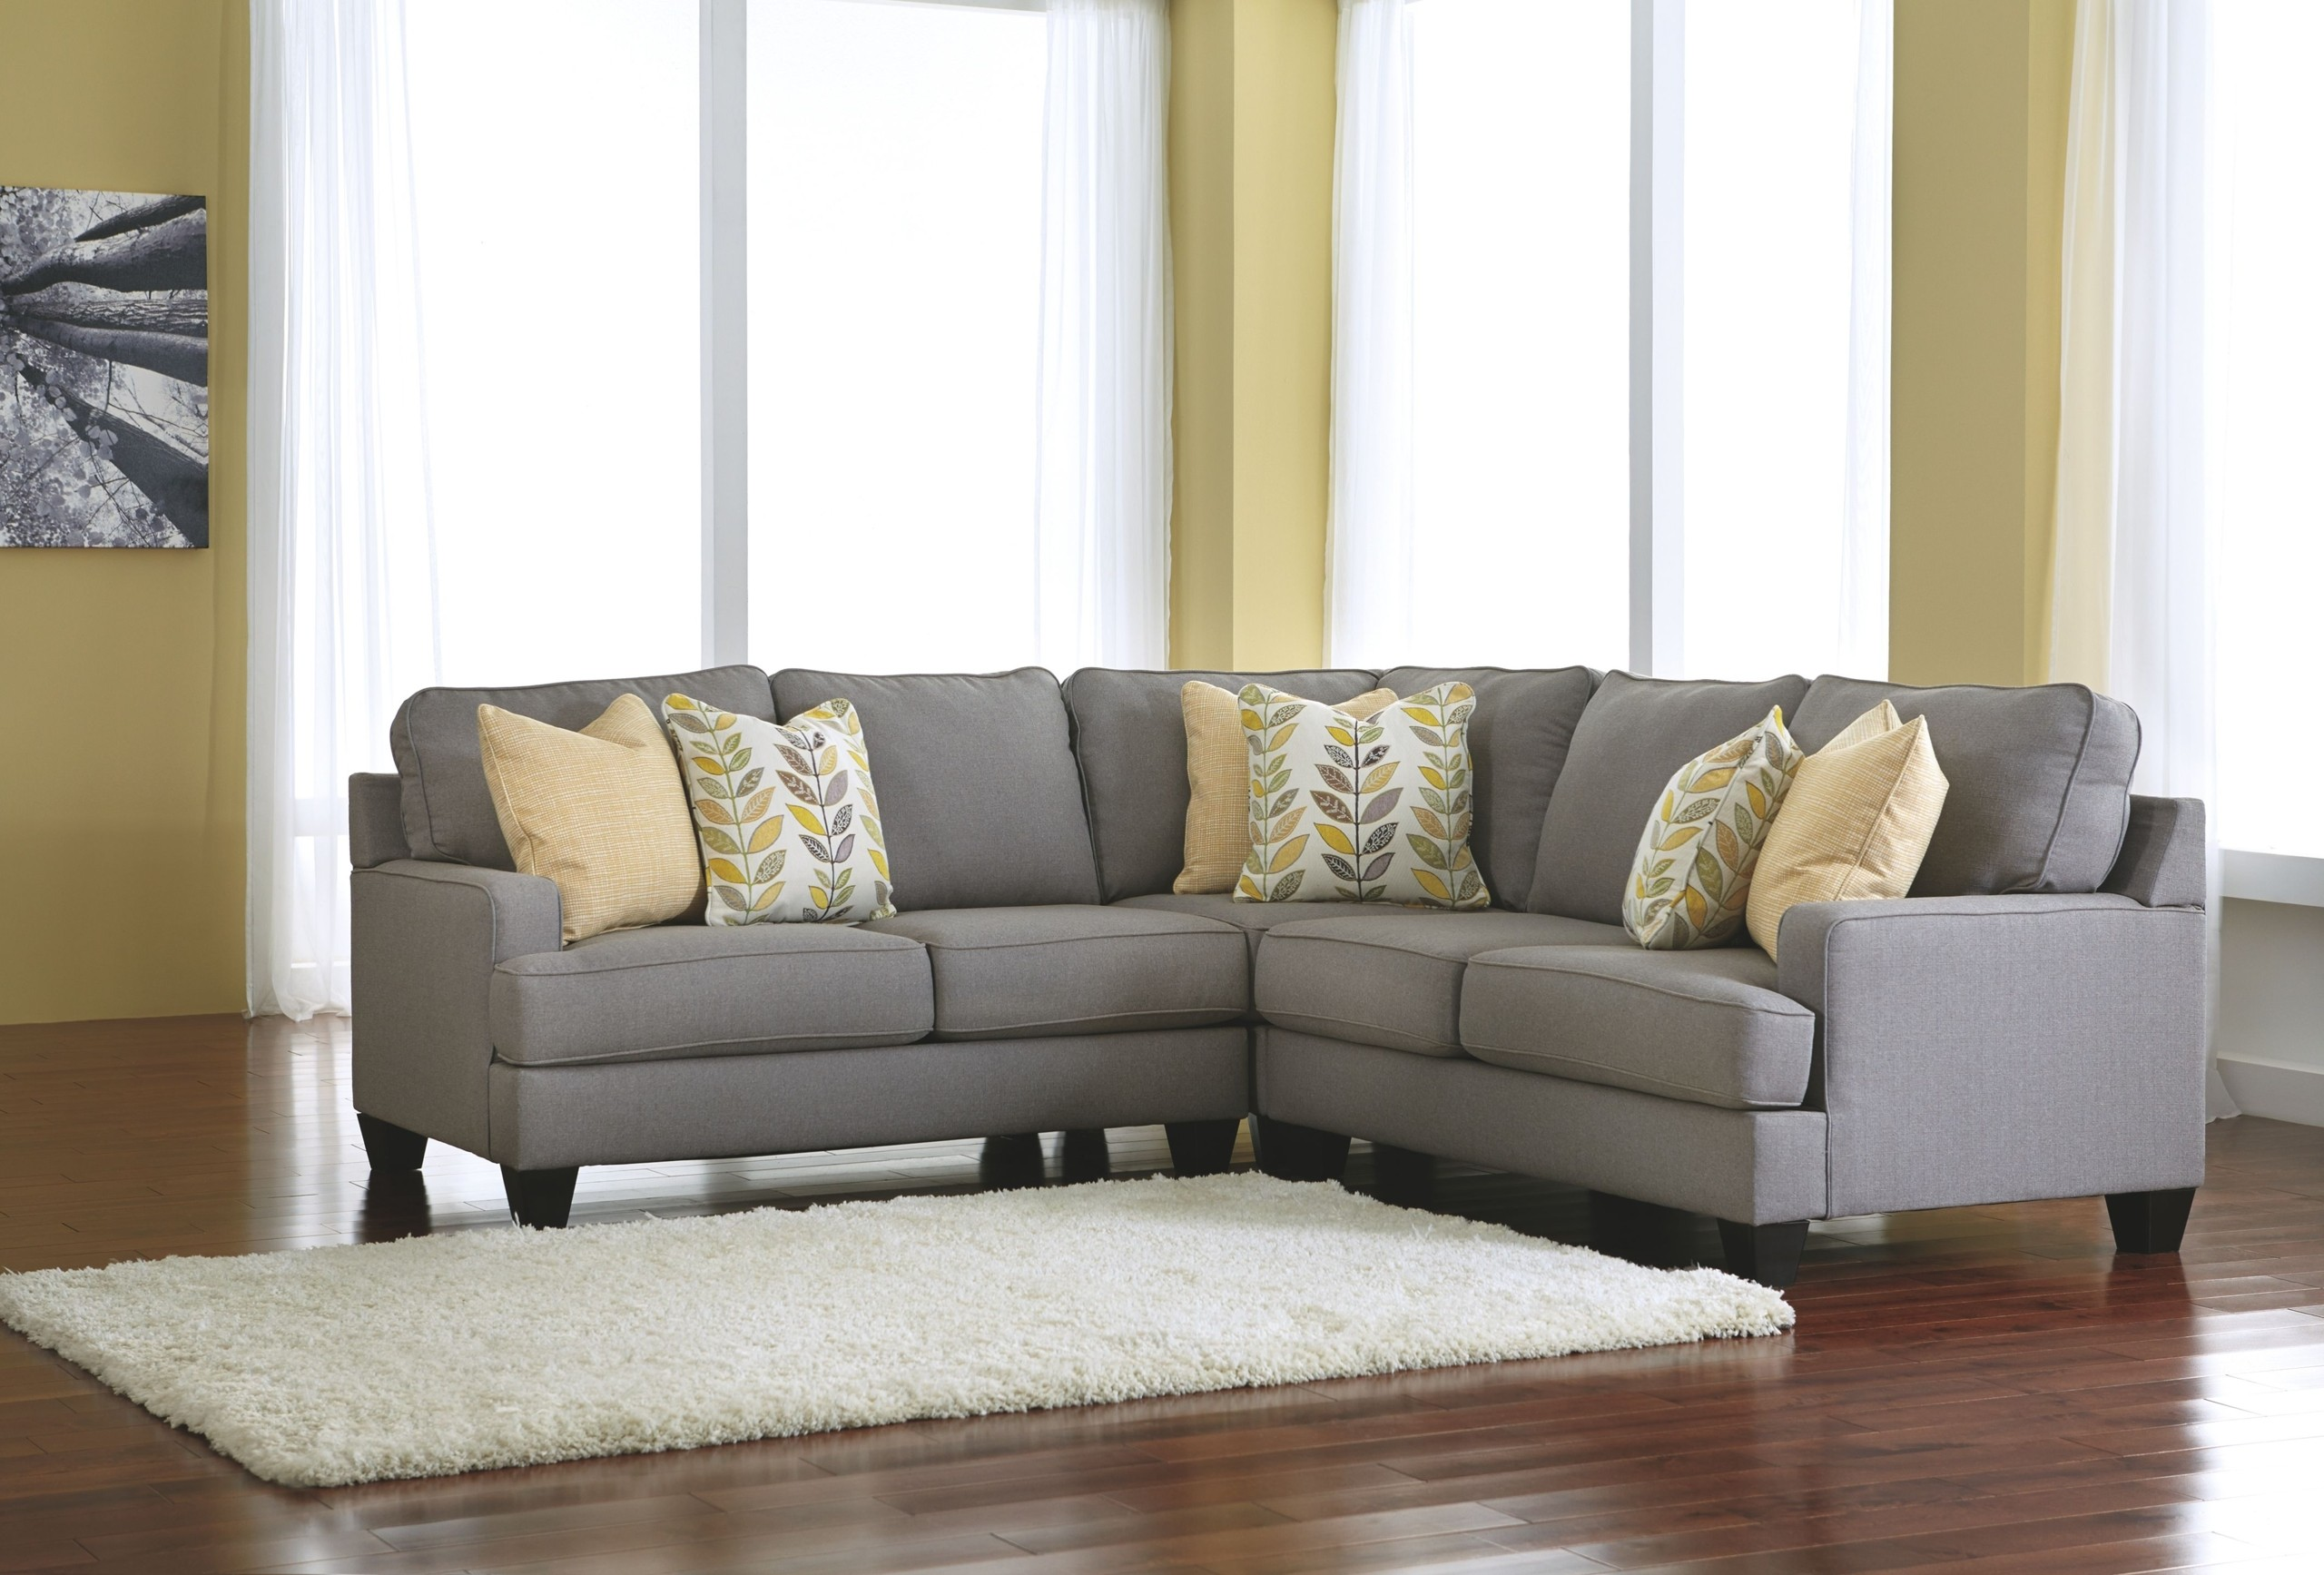 Superbe Small Scale Sectional Sofa 6